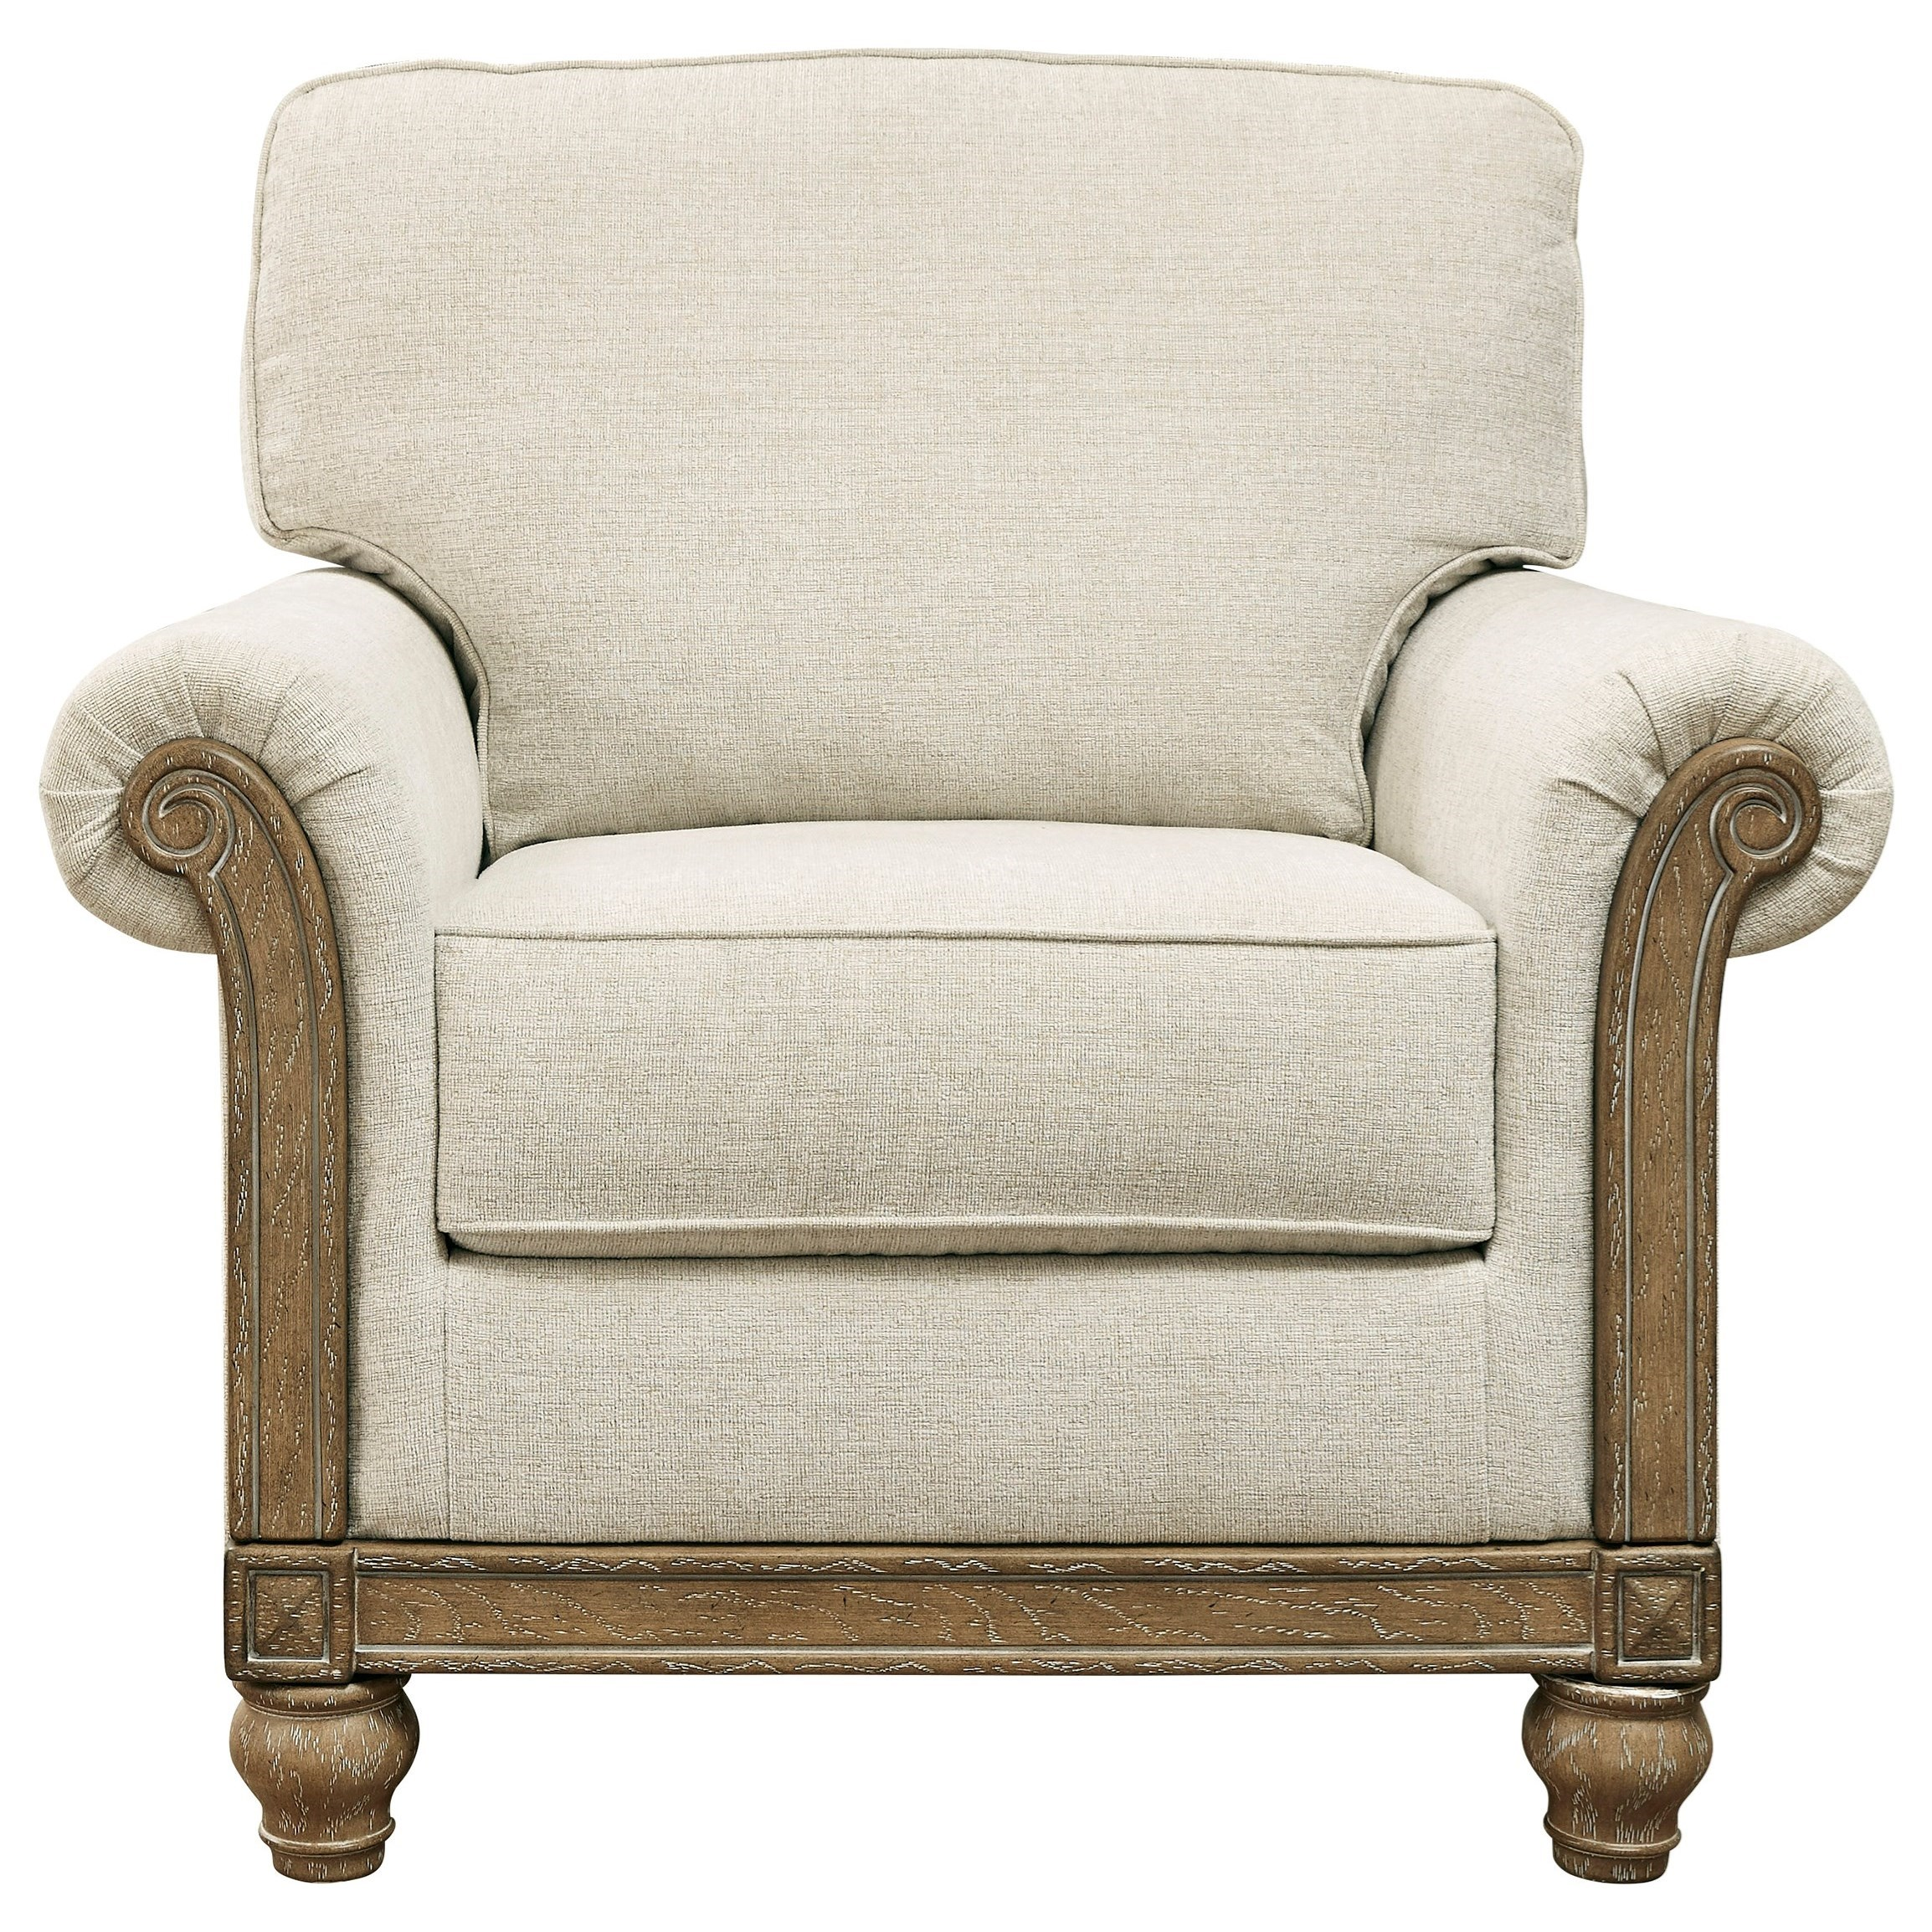 Stoneleigh  Upholstered Chair  by Benchcraft at Walker's Furniture